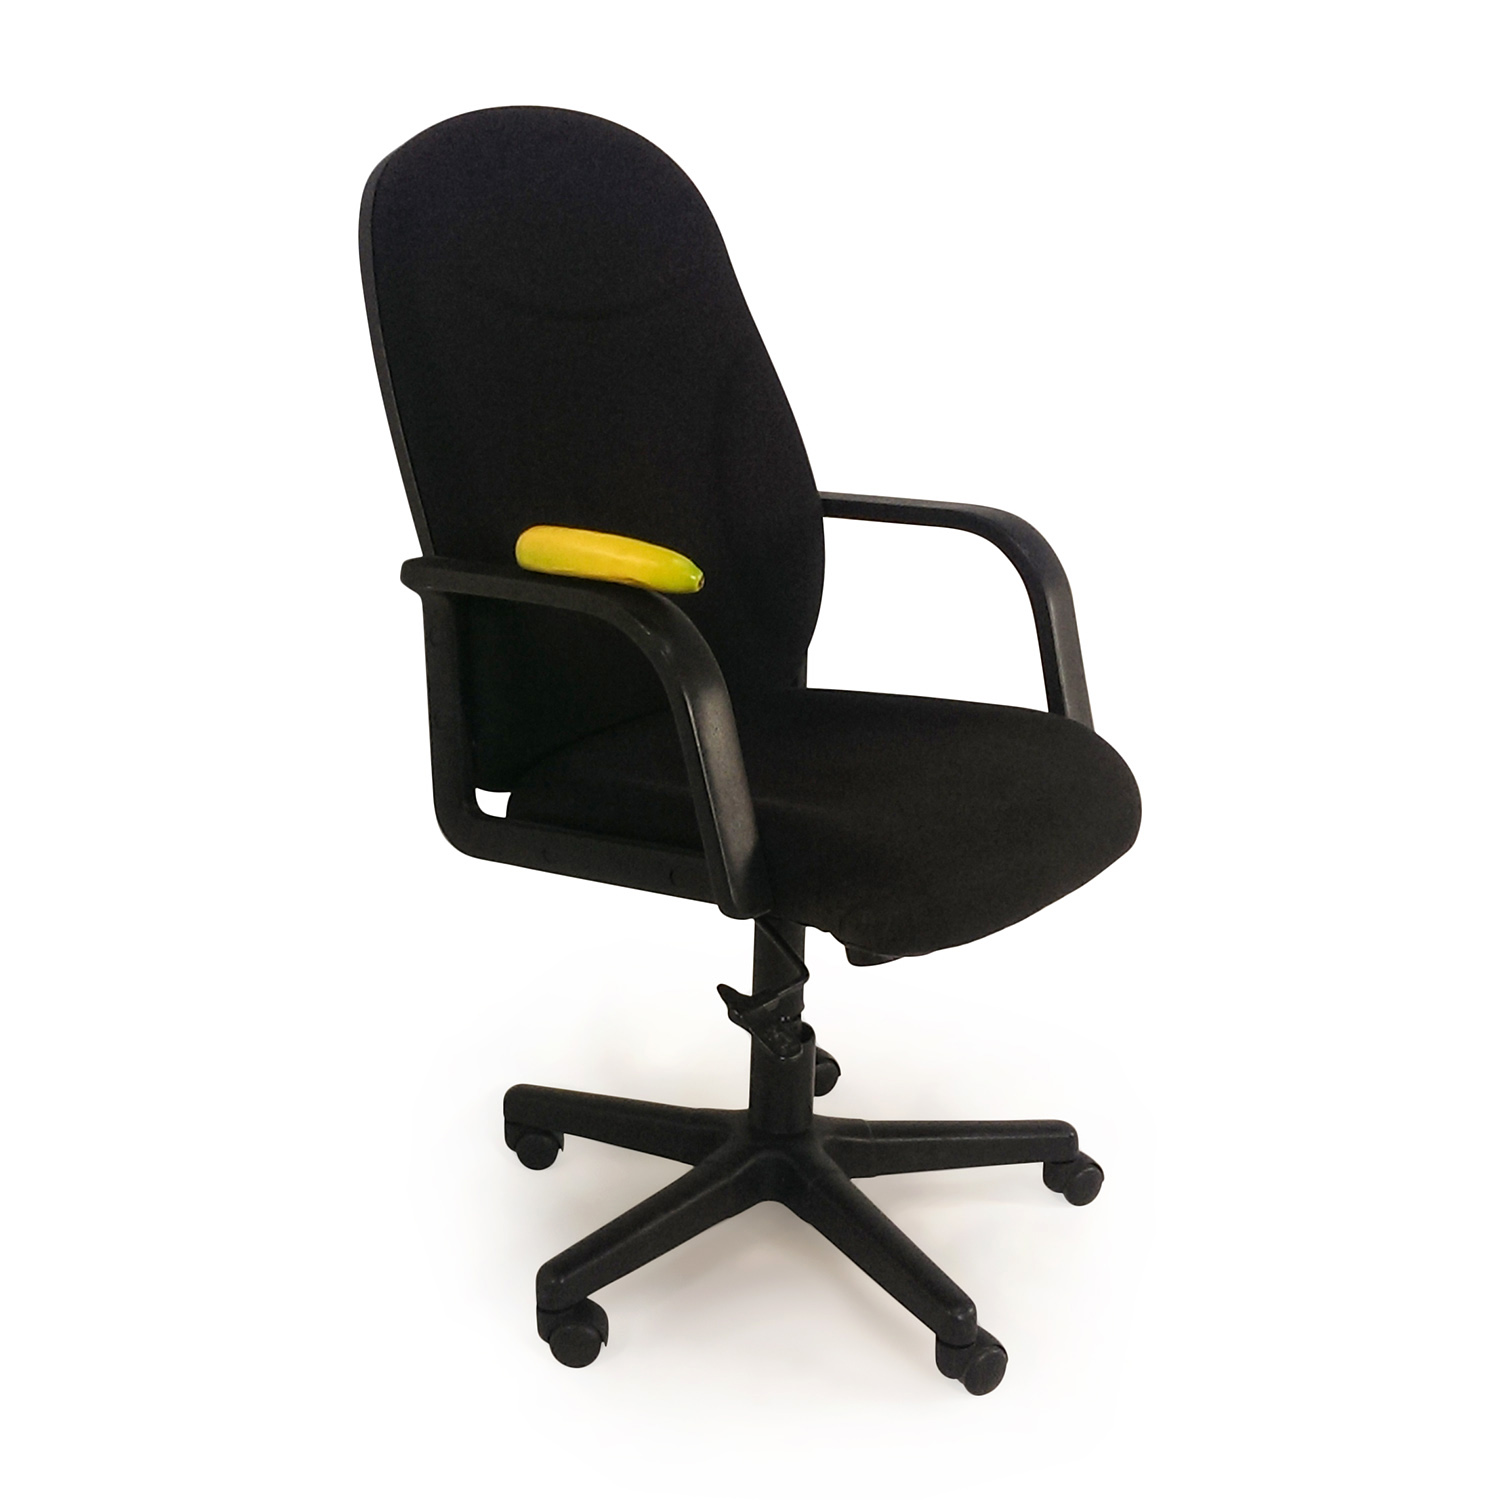 Furniture Chairs Black 80 Off Black Office Chair Chairs